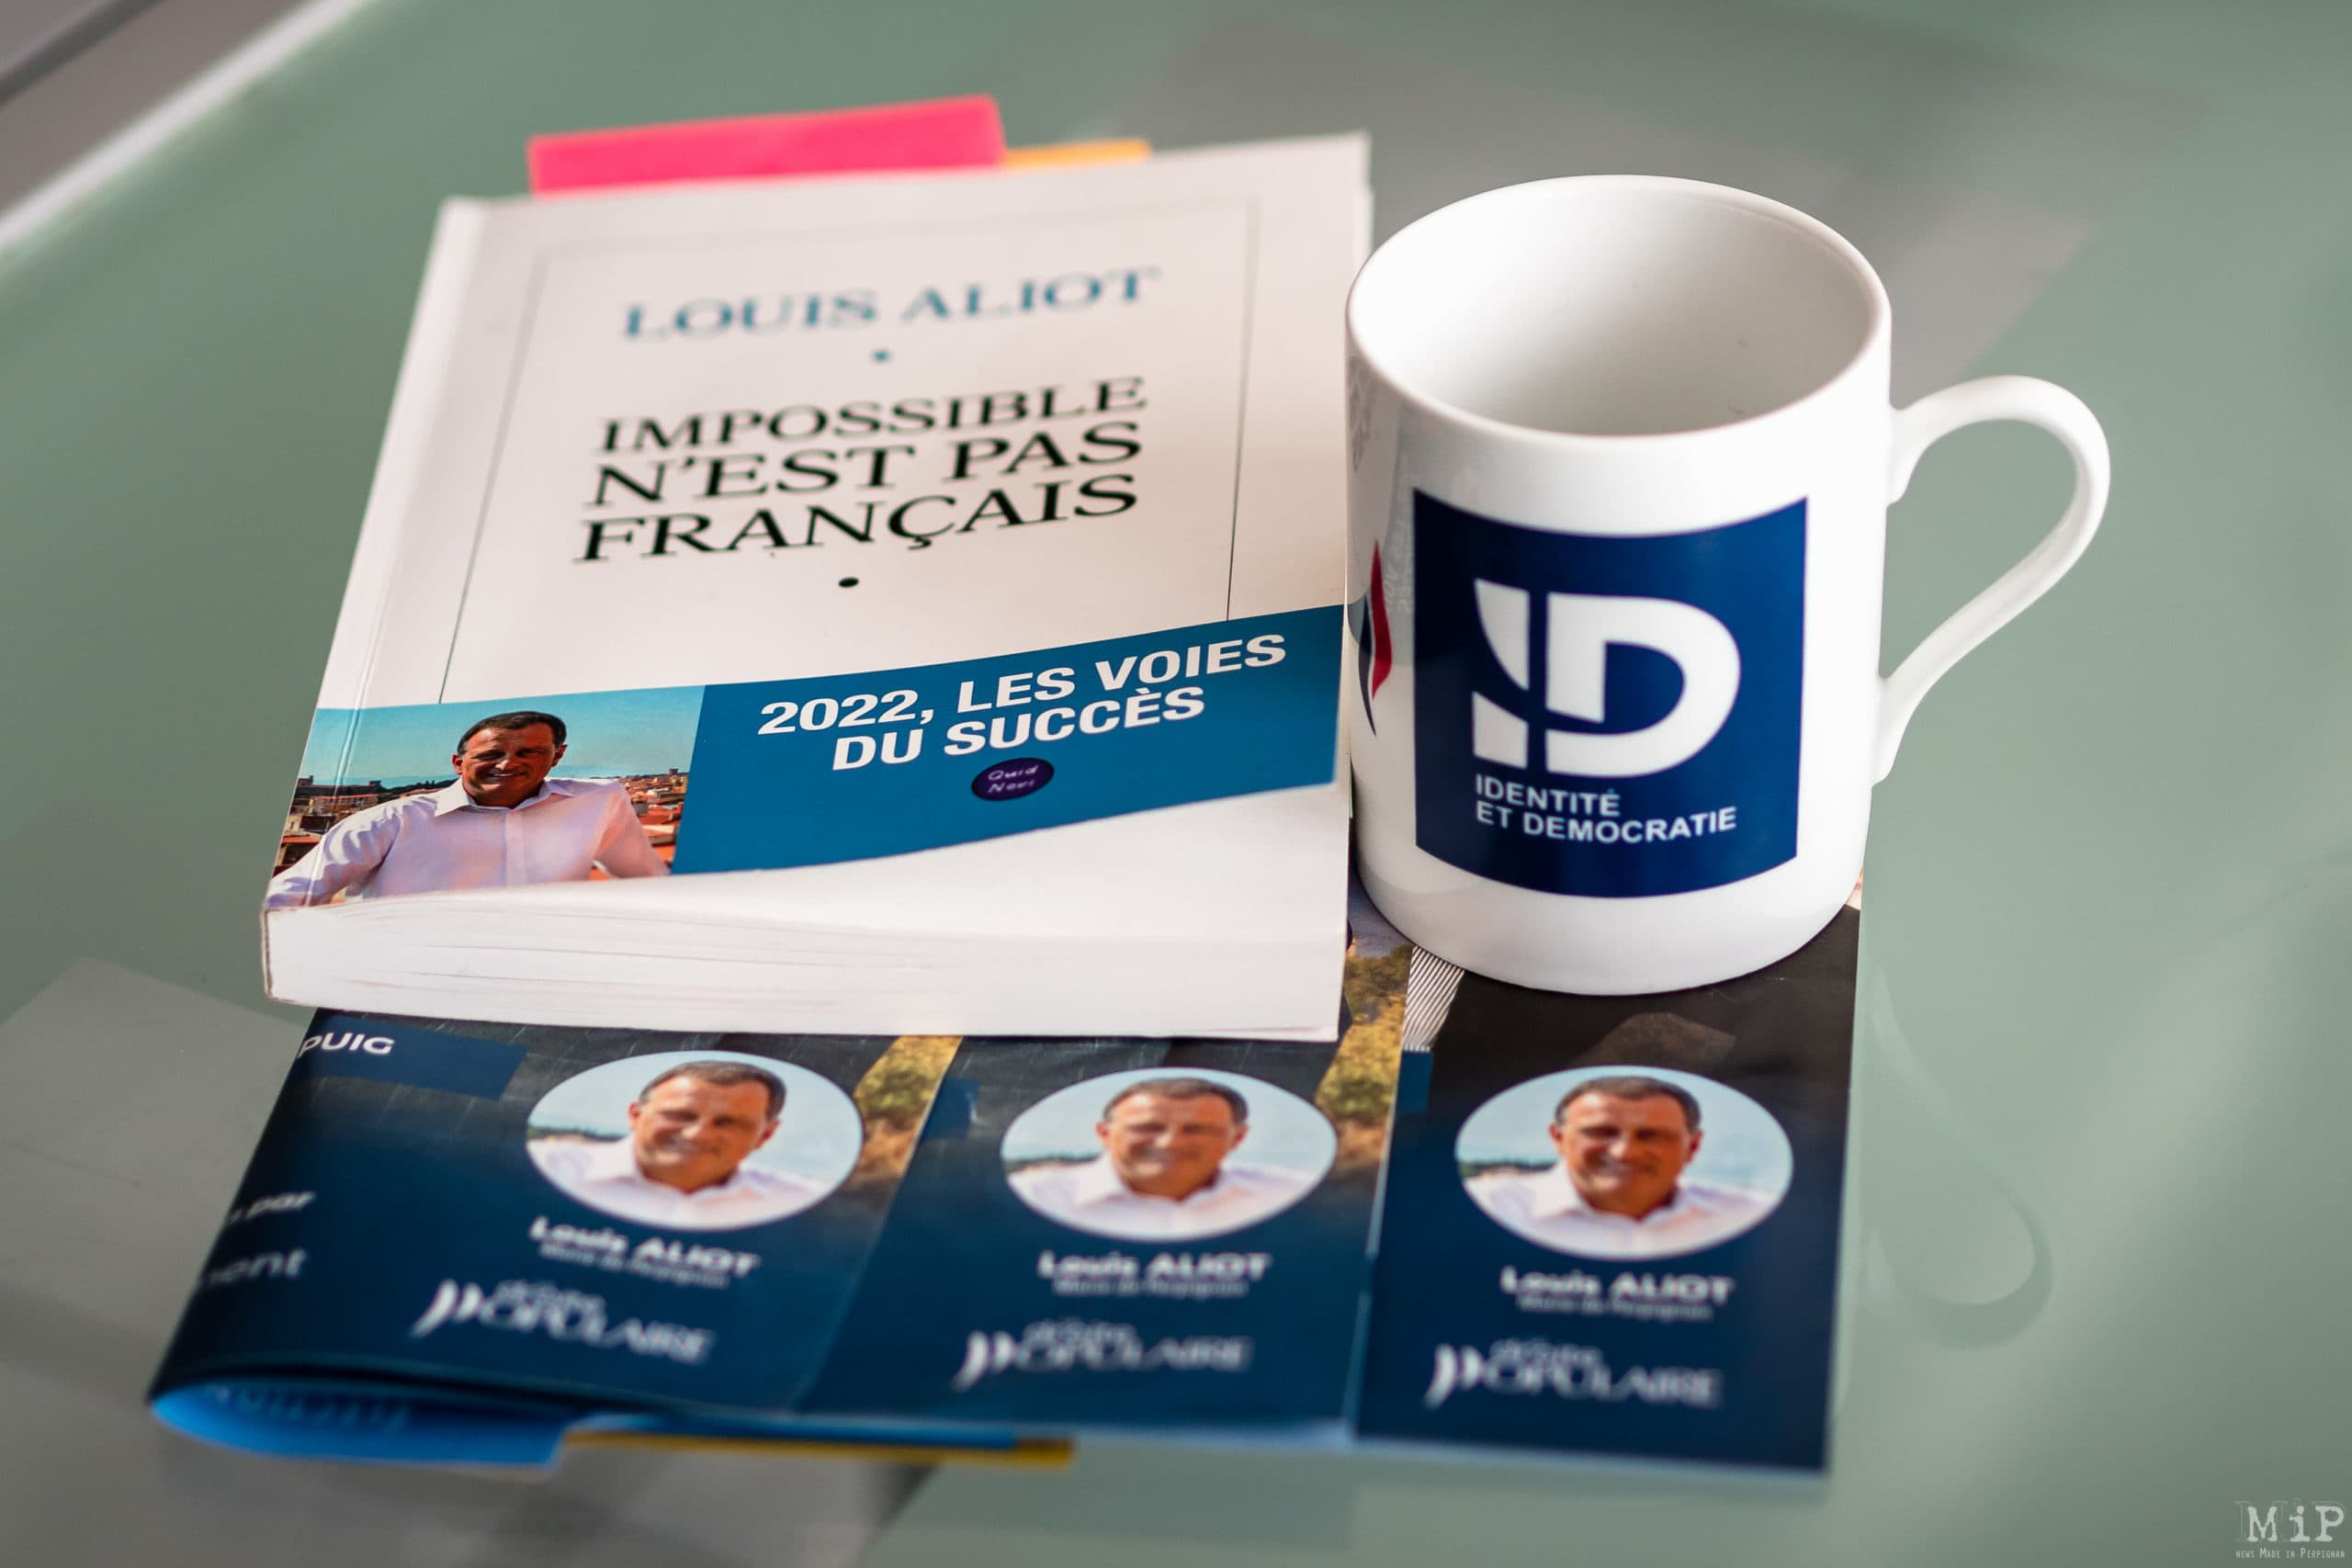 """France, Perpignan, 2021-09-08. Illustration, cover of the book """"Impossible is not French"""" by Louis Aliot, number 3 of the Rassemblement National and Mayor of Perpignan. Photograph by Arnaud Le Vu / Hans Lucas. France, Perpignan, 2021-09-08. Illustration, couverture du livre """"Impossible n est pas francais par Louis Aliot"""", numero 3 du Rassemblement National et maire de Perpignan. Photographie de Arnaud Le Vu / Hans Lucas."""